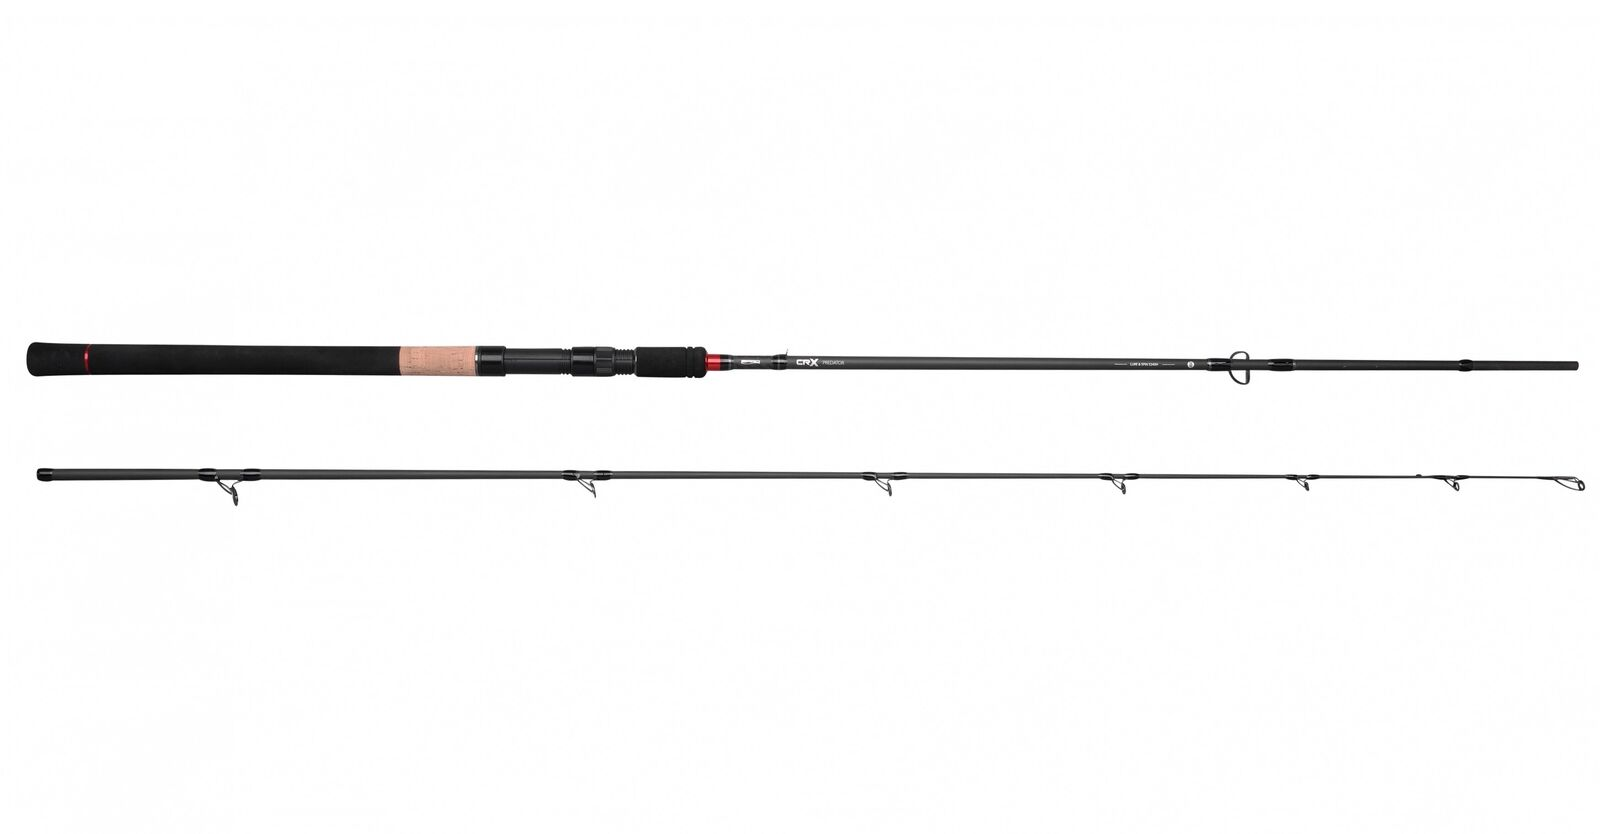 SPRO CRX CRX CRX LURE & SPIN 5-20G S210L a95cfc